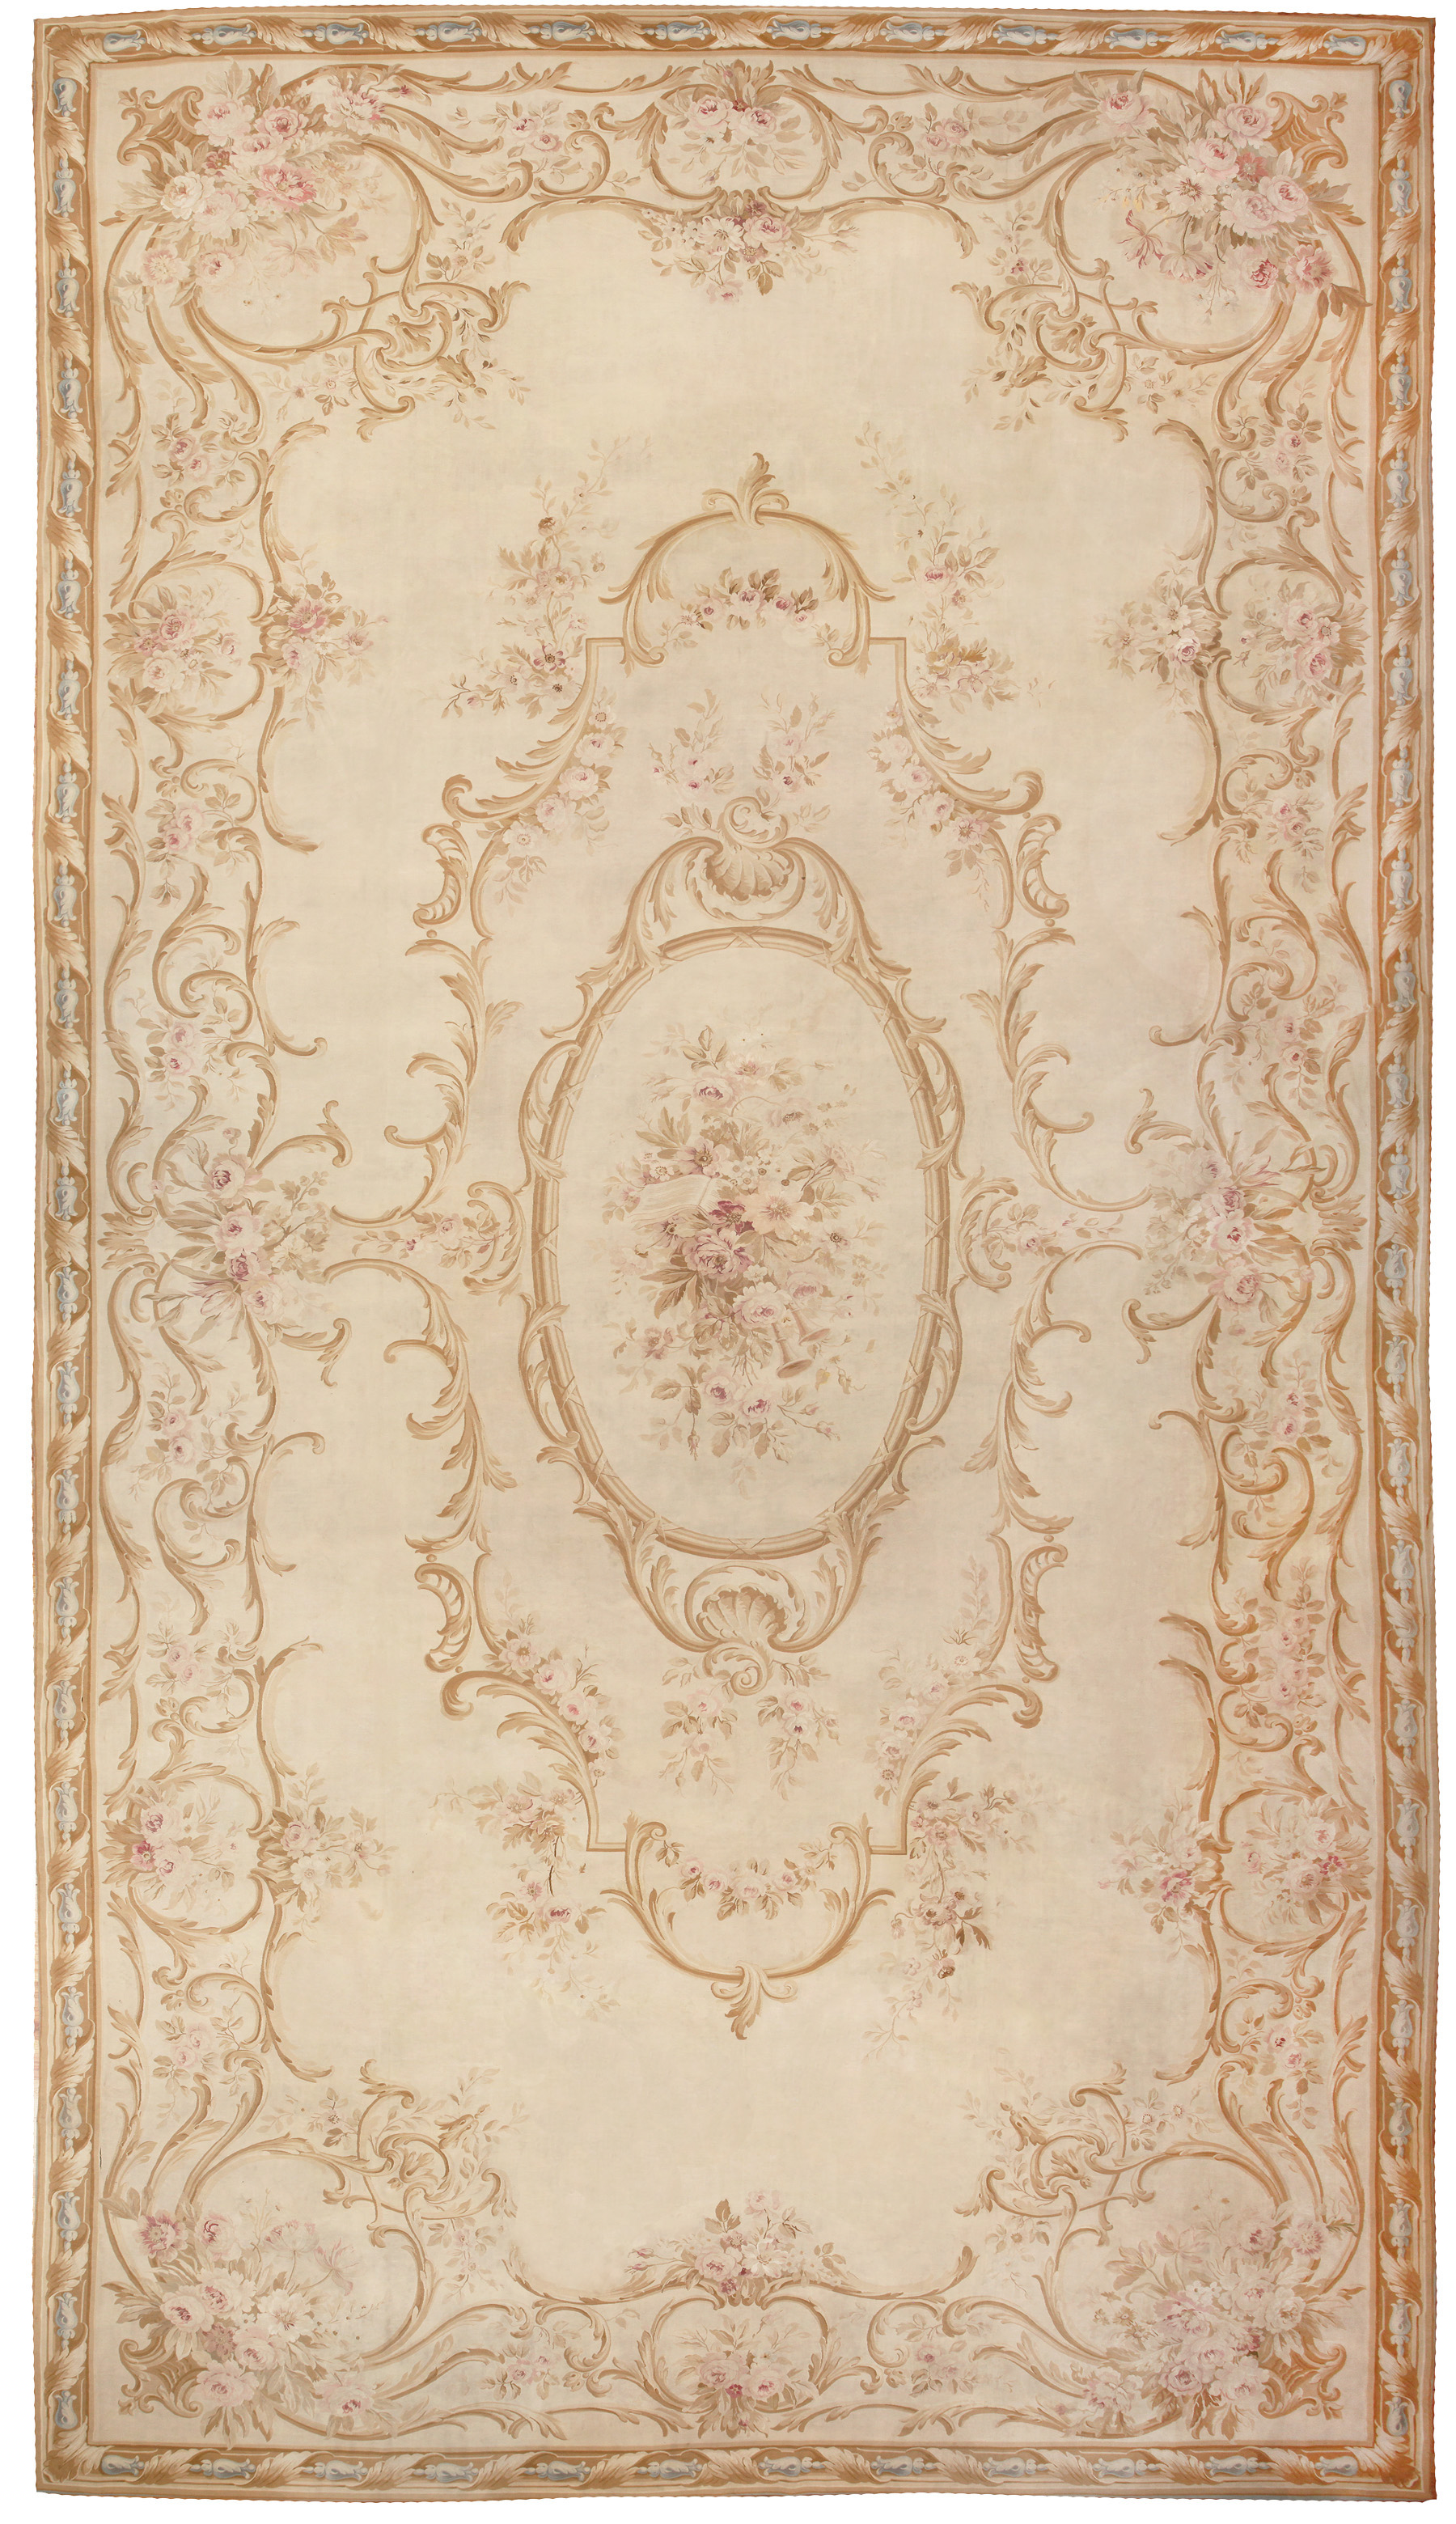 Impressive Antique Aubusson Rugs | Awesome Aubusson Rugs